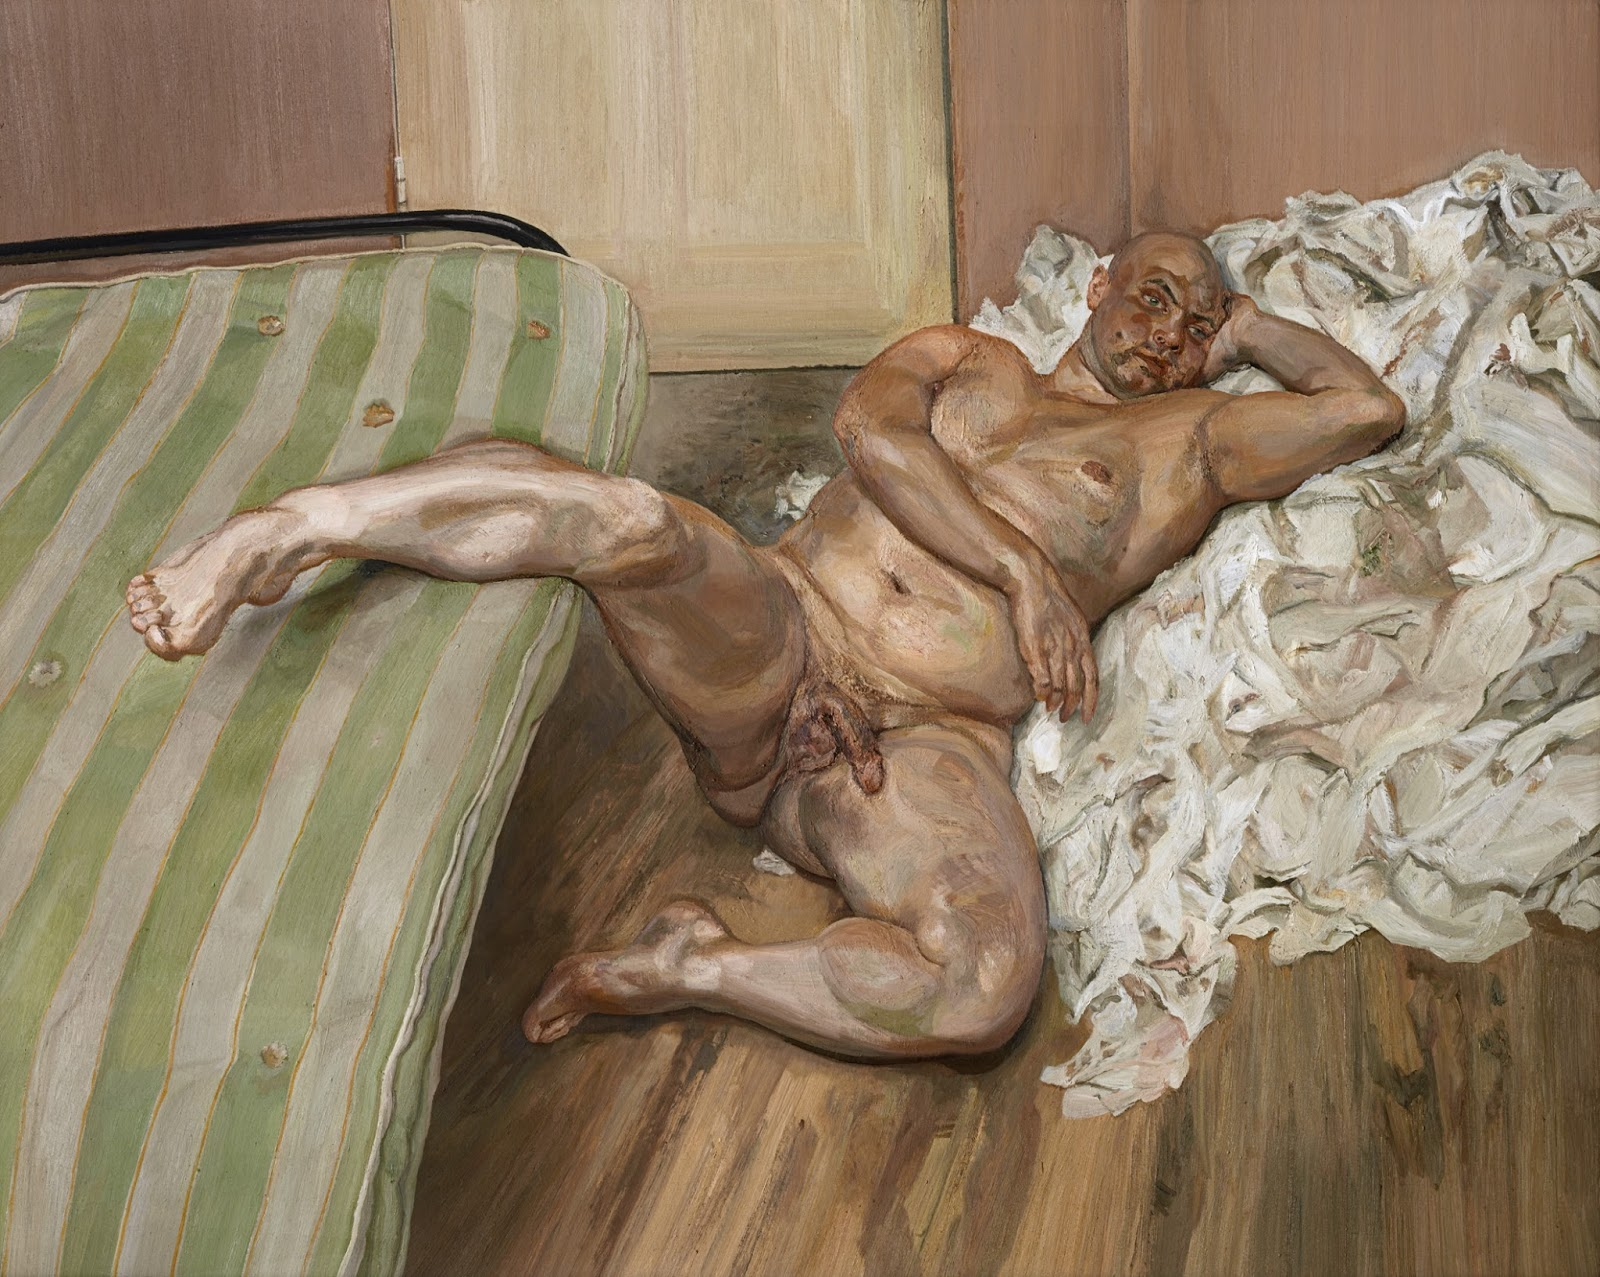 Have missed Lucian freud naked portrait has analogues?